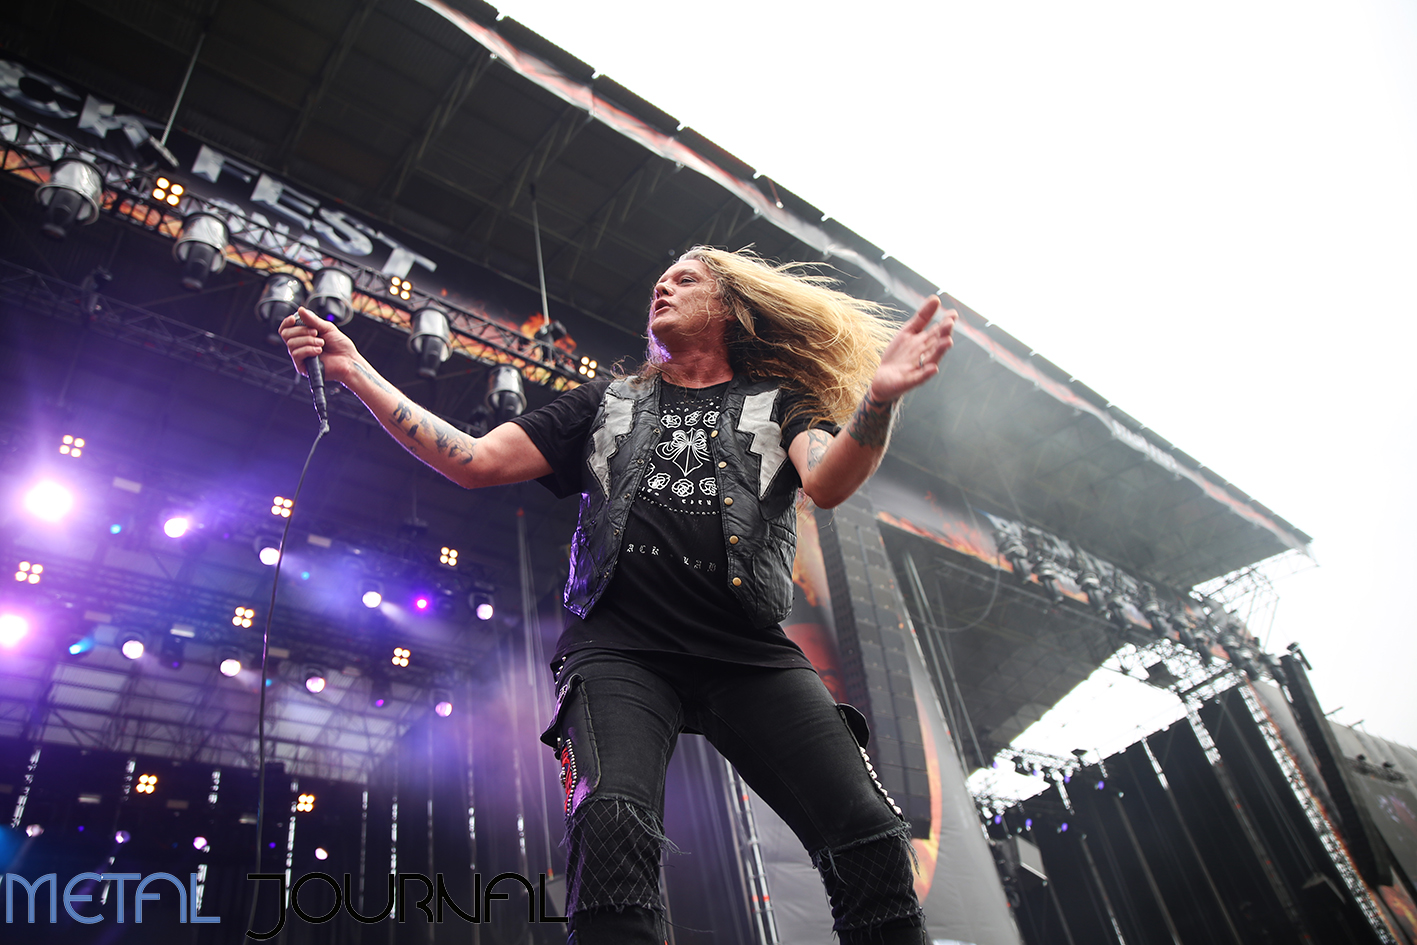 sebastian bach - metal journal rock fest barcelona 2019 pic 1